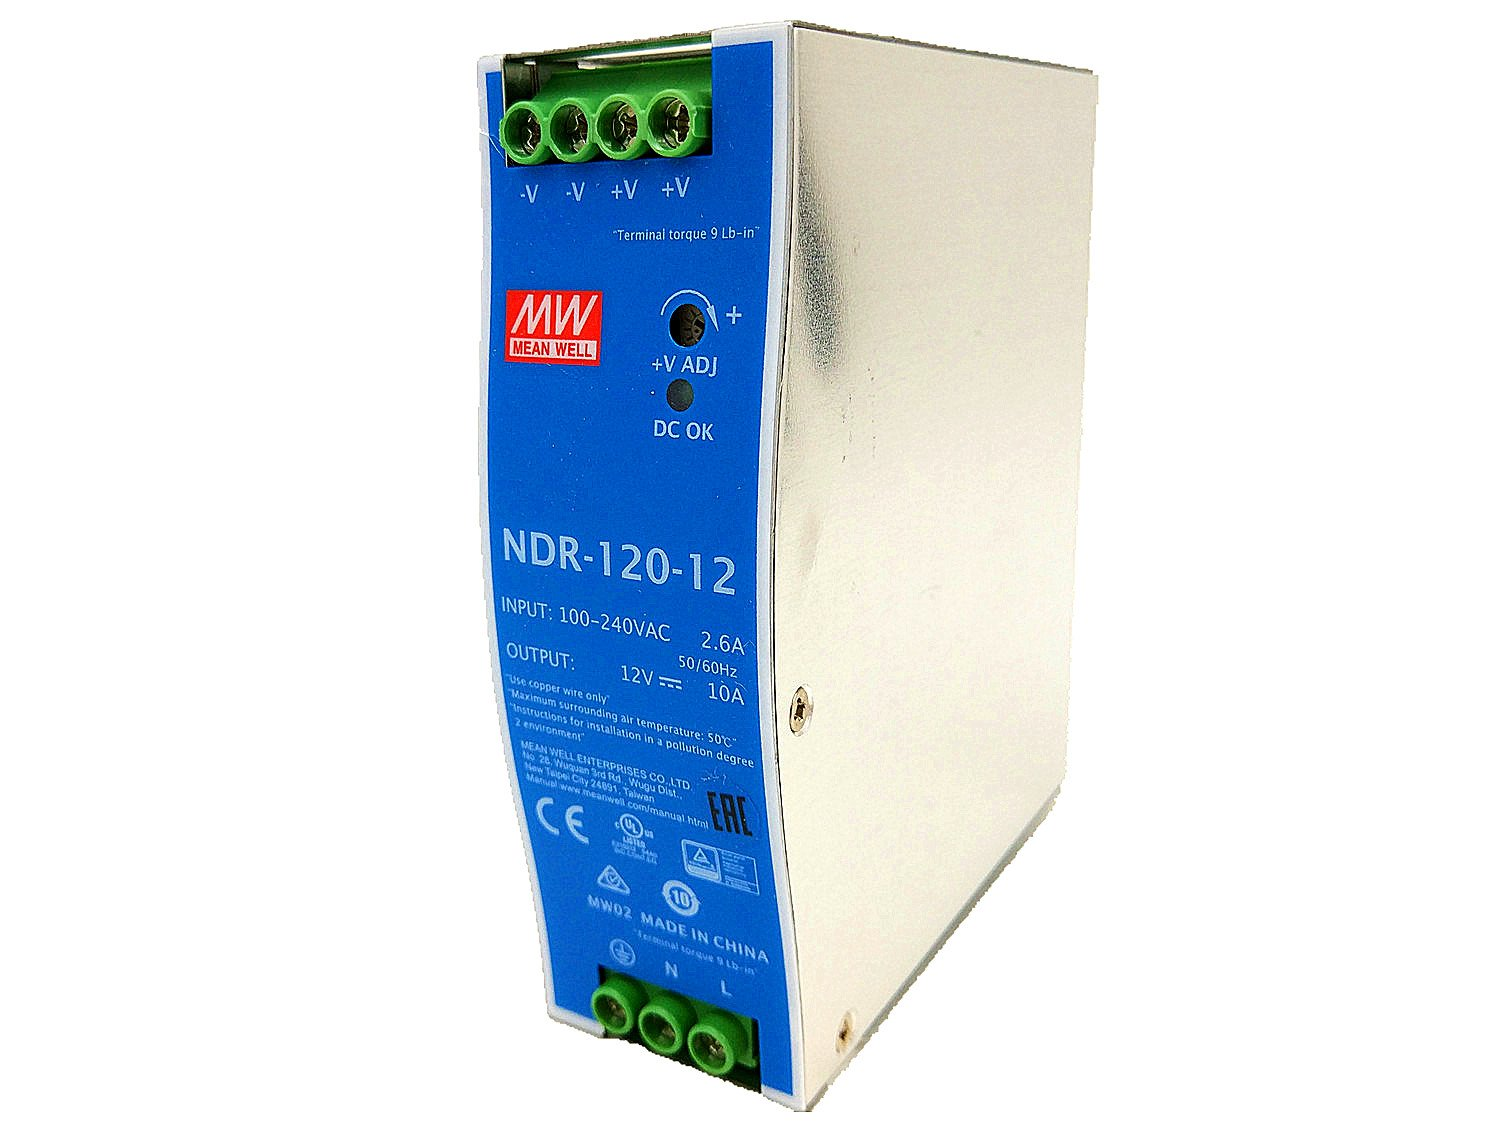 MEAN WELL NDR-120-12 Single Output 120W 12V 10A Industrial DIN Rail Mounted Meanwell Power Supply NDR-120